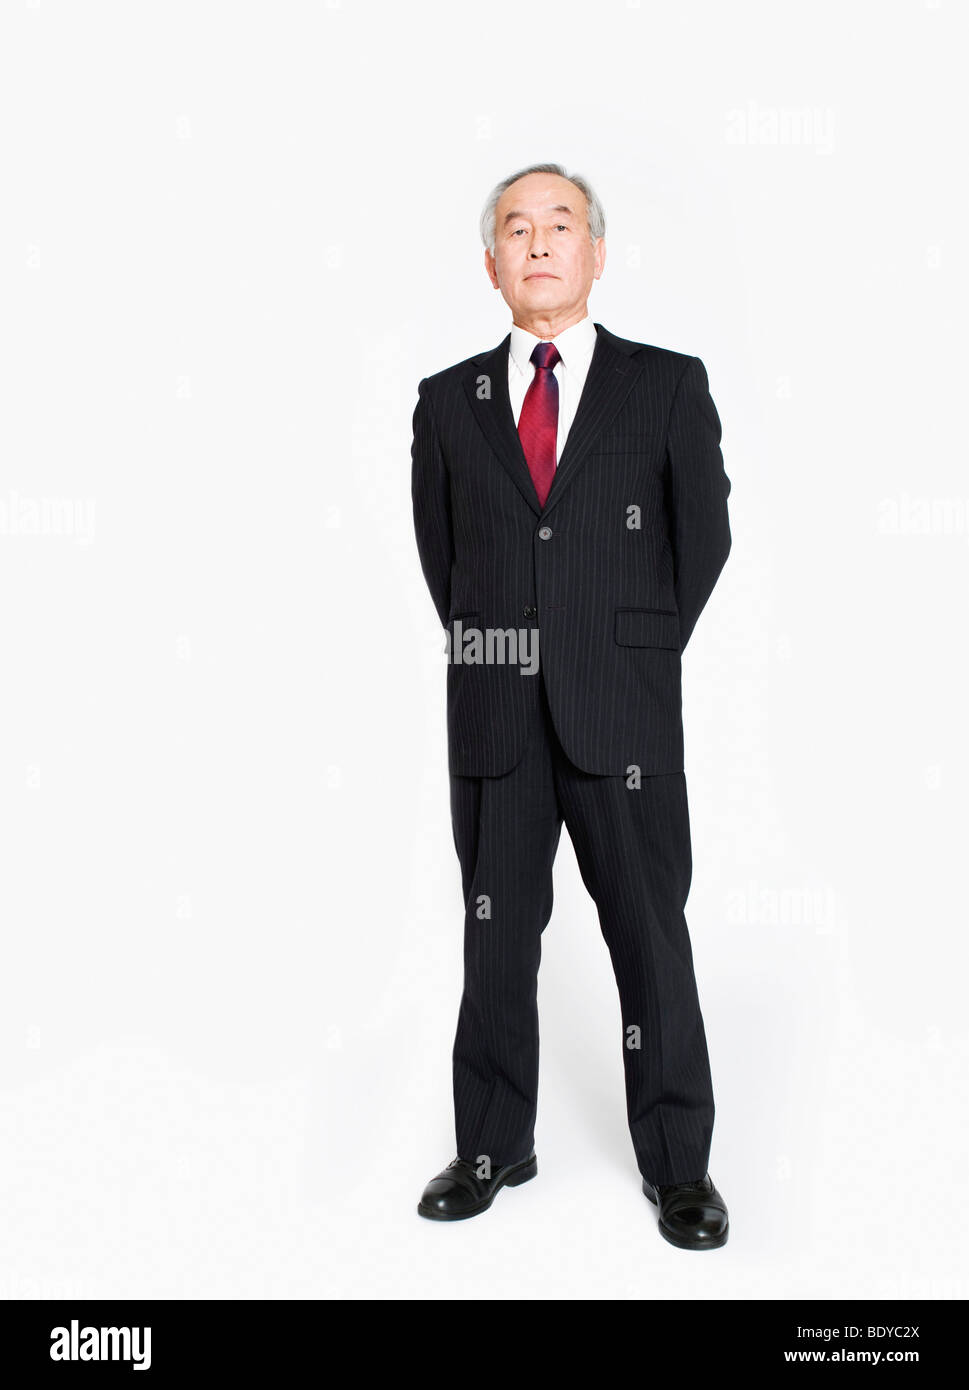 A full length portrait of an Asian man - Stock Image